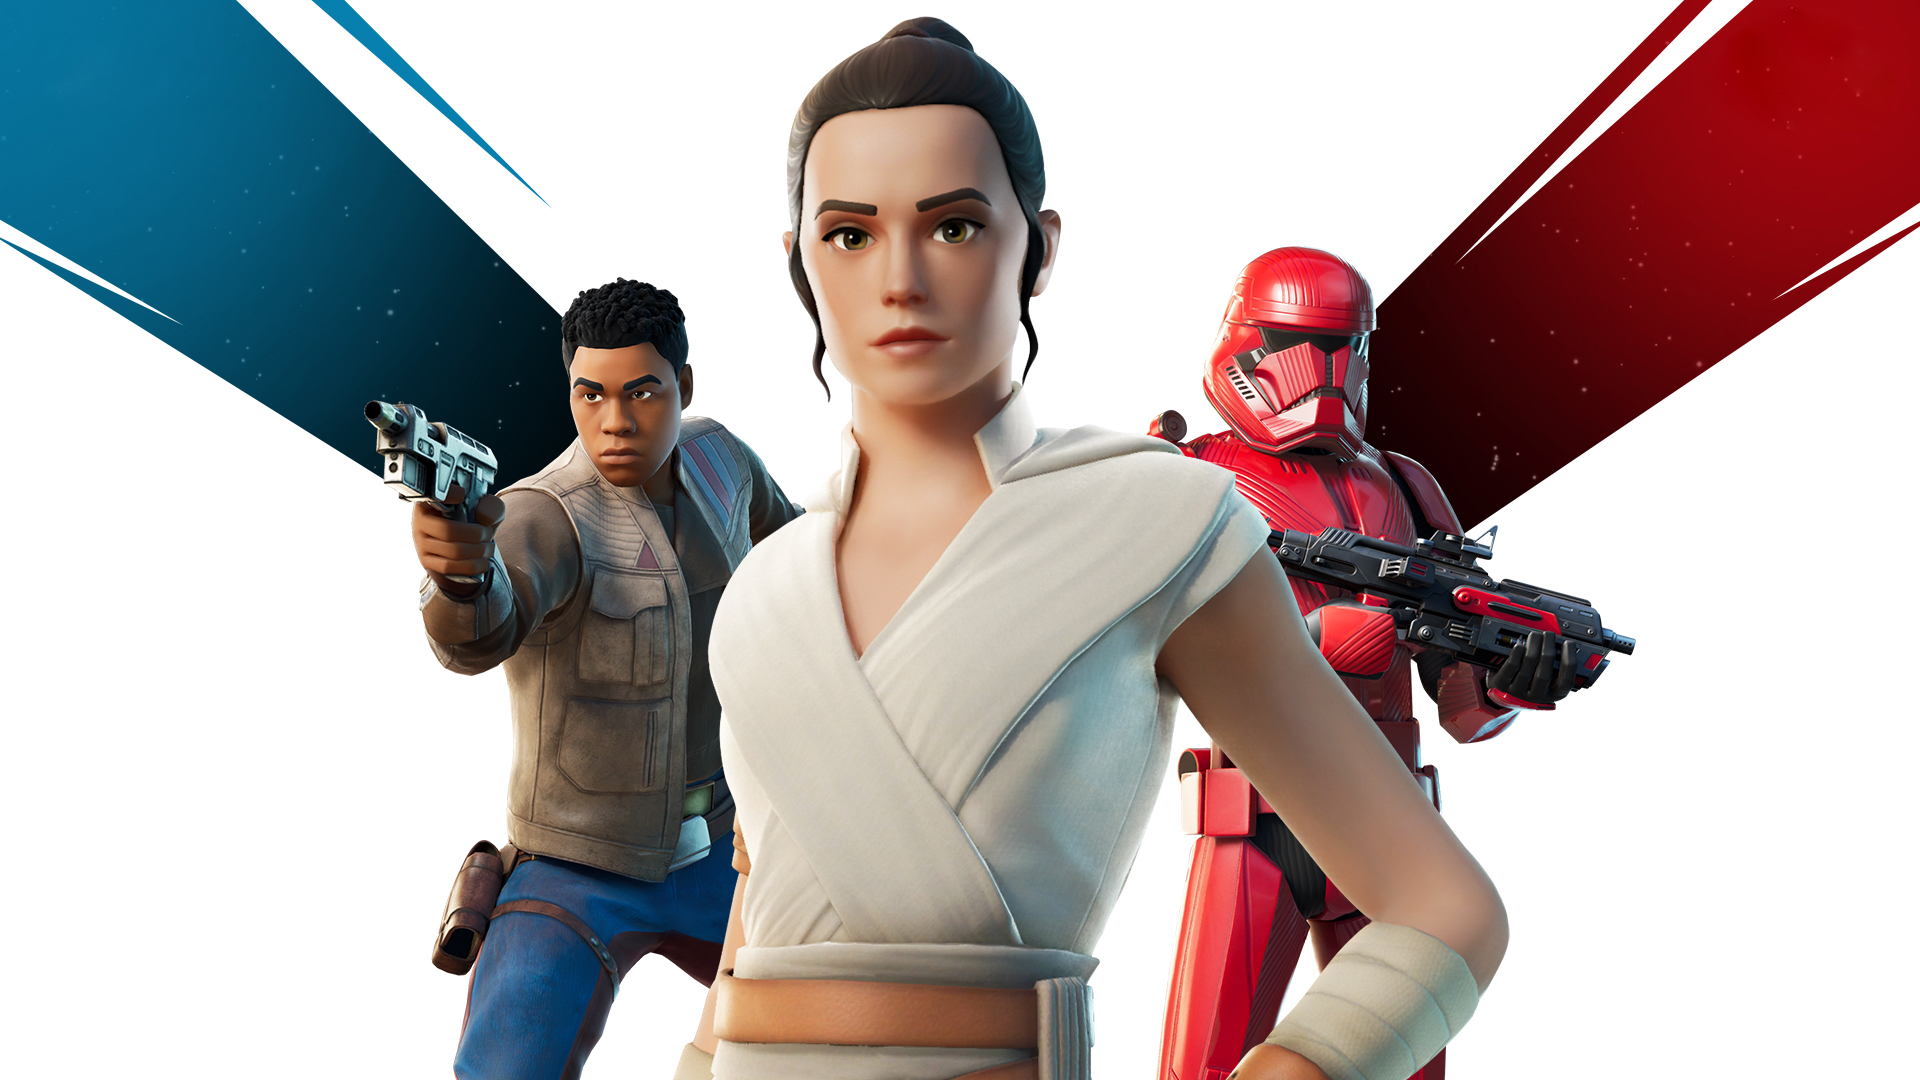 Fortnite Star Wars 9 Rise Of Skywalker Wallpaper Hd Games 4k Wallpapers Images Photos And Background